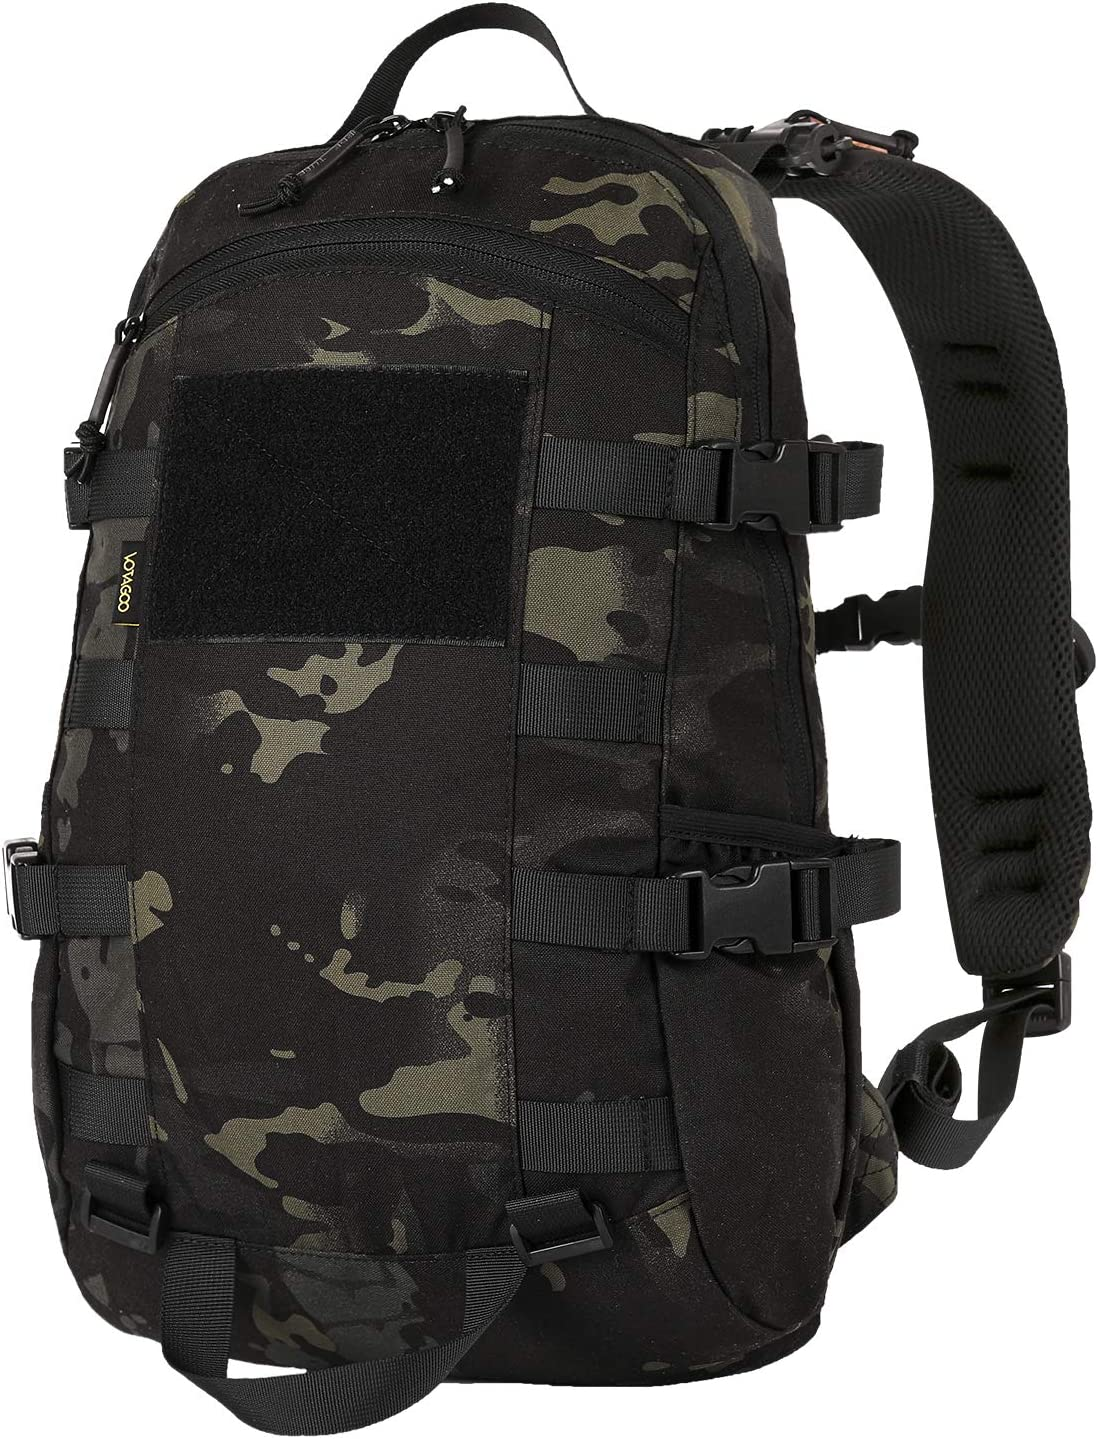 Special price for a limited time VOTAGOO Tactical Backpack Men Very popular Military Outdoor Assault Pack